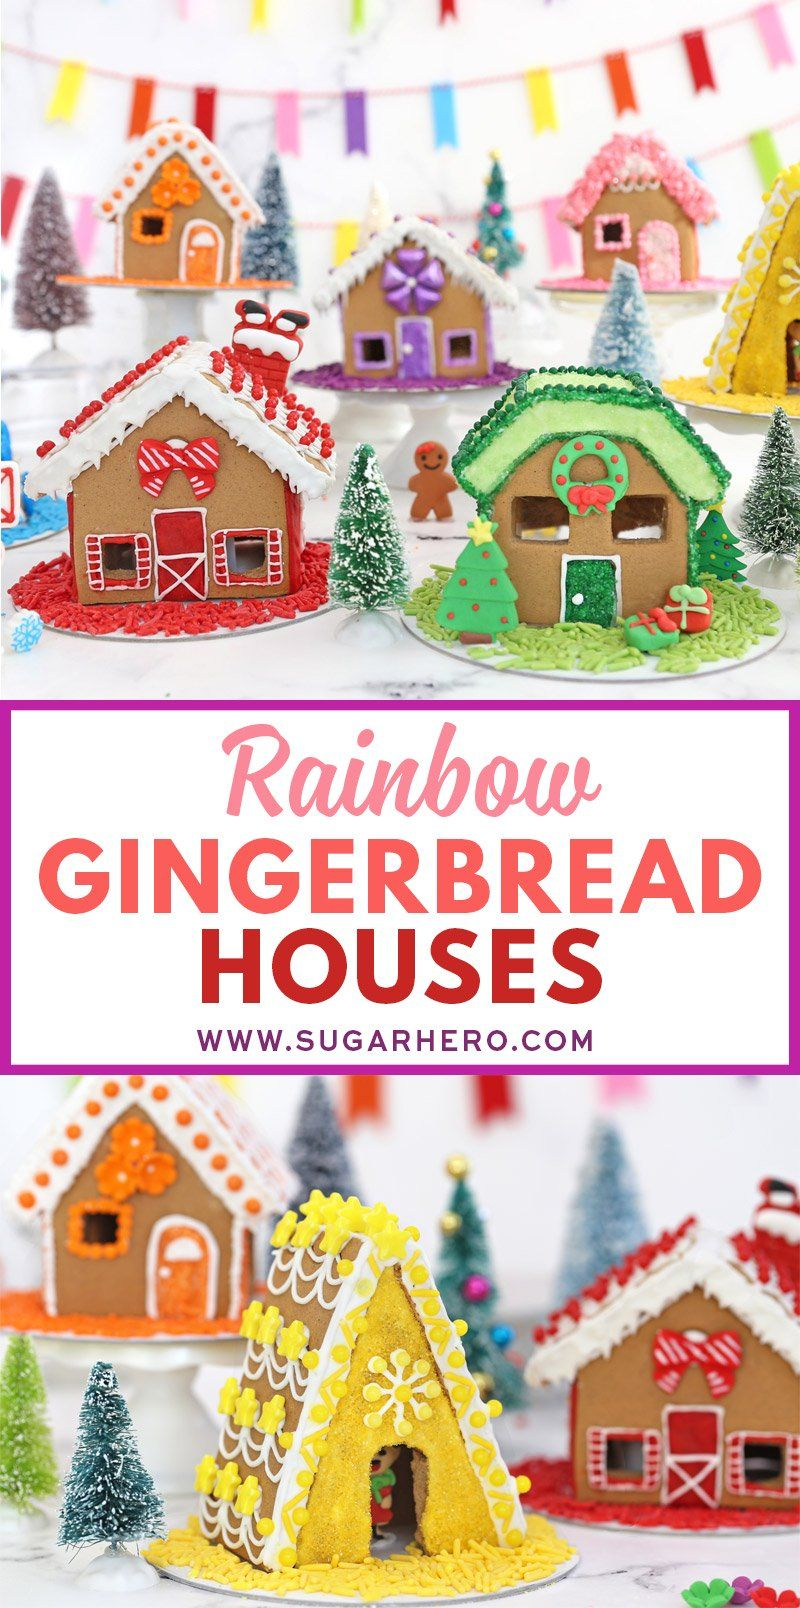 Looking For Gingerbread House Decorating Ideas Say Goodbye To Boring Gingerbread Houses And Hello Gingerbread House Gingerbread House Decorations Gingerbread